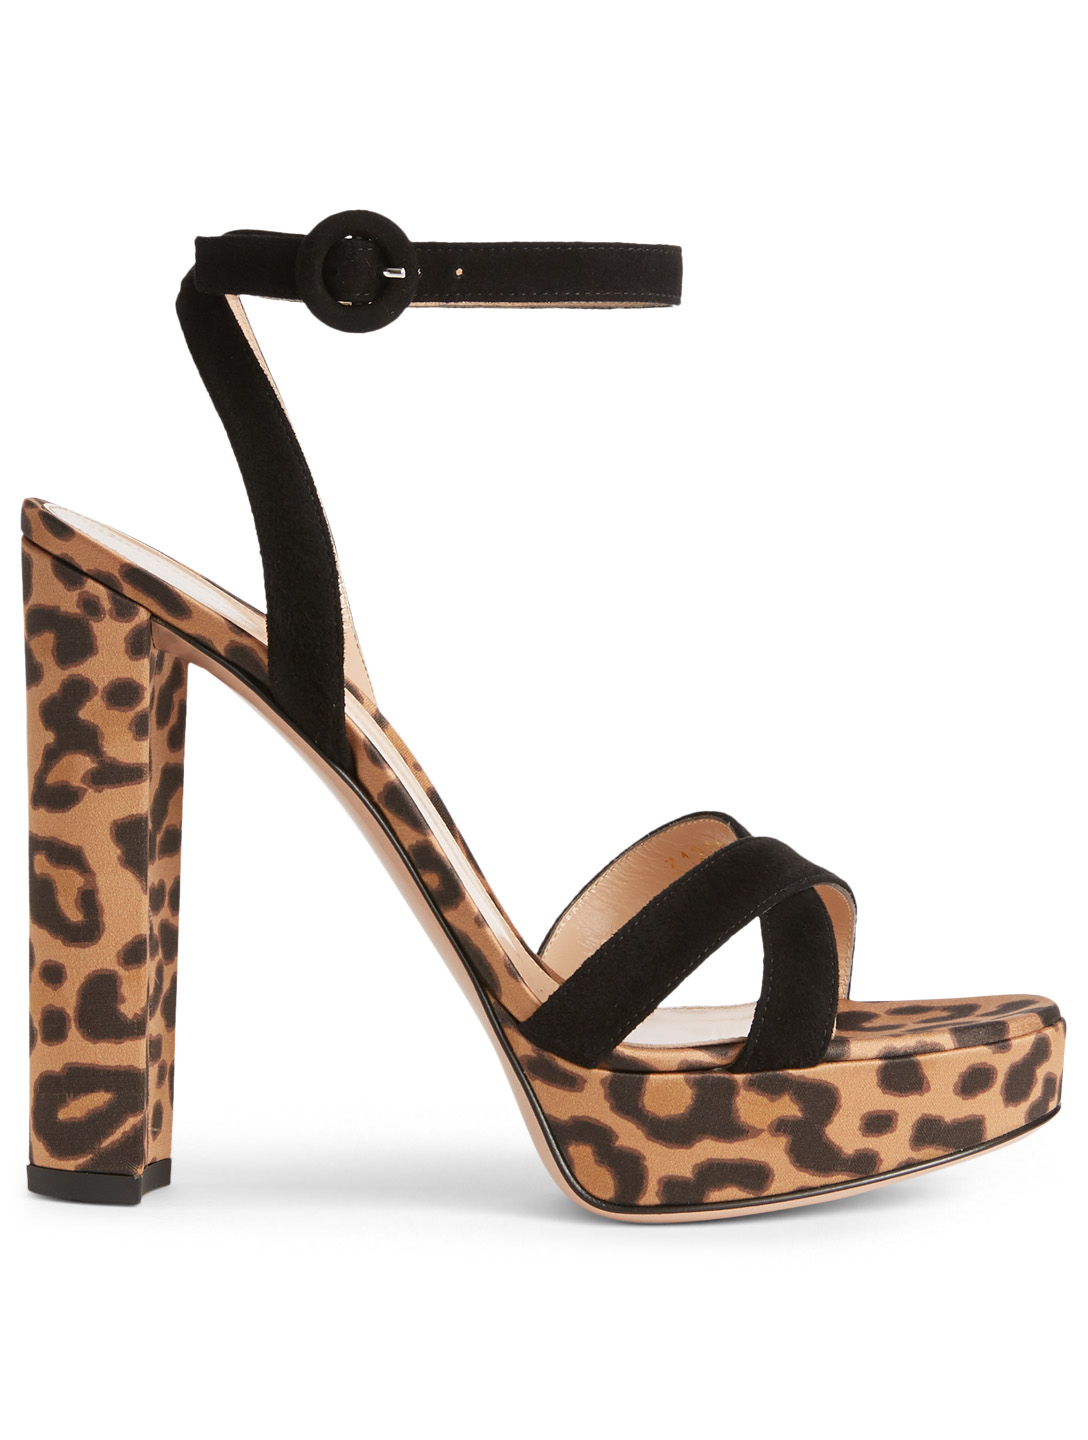 GIANVITO ROSSI Poppy Suede And Silk Platform Sandals In Leopard Print Womens Black